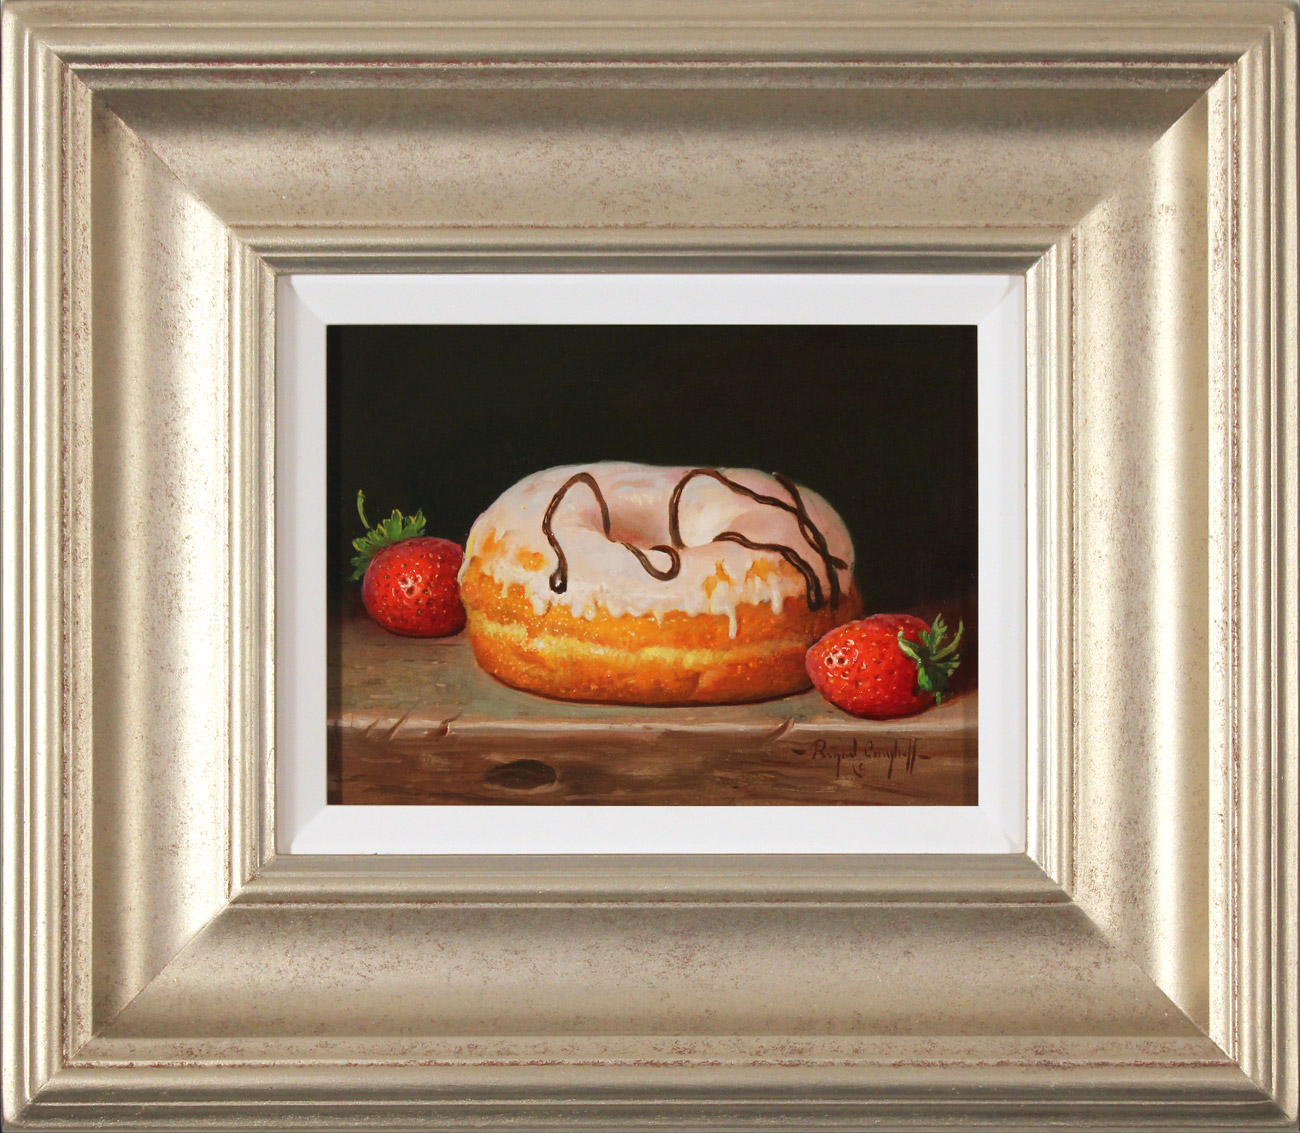 Raymond Campbell, Original oil painting on panel, Sweet Treat  Click to enlarge